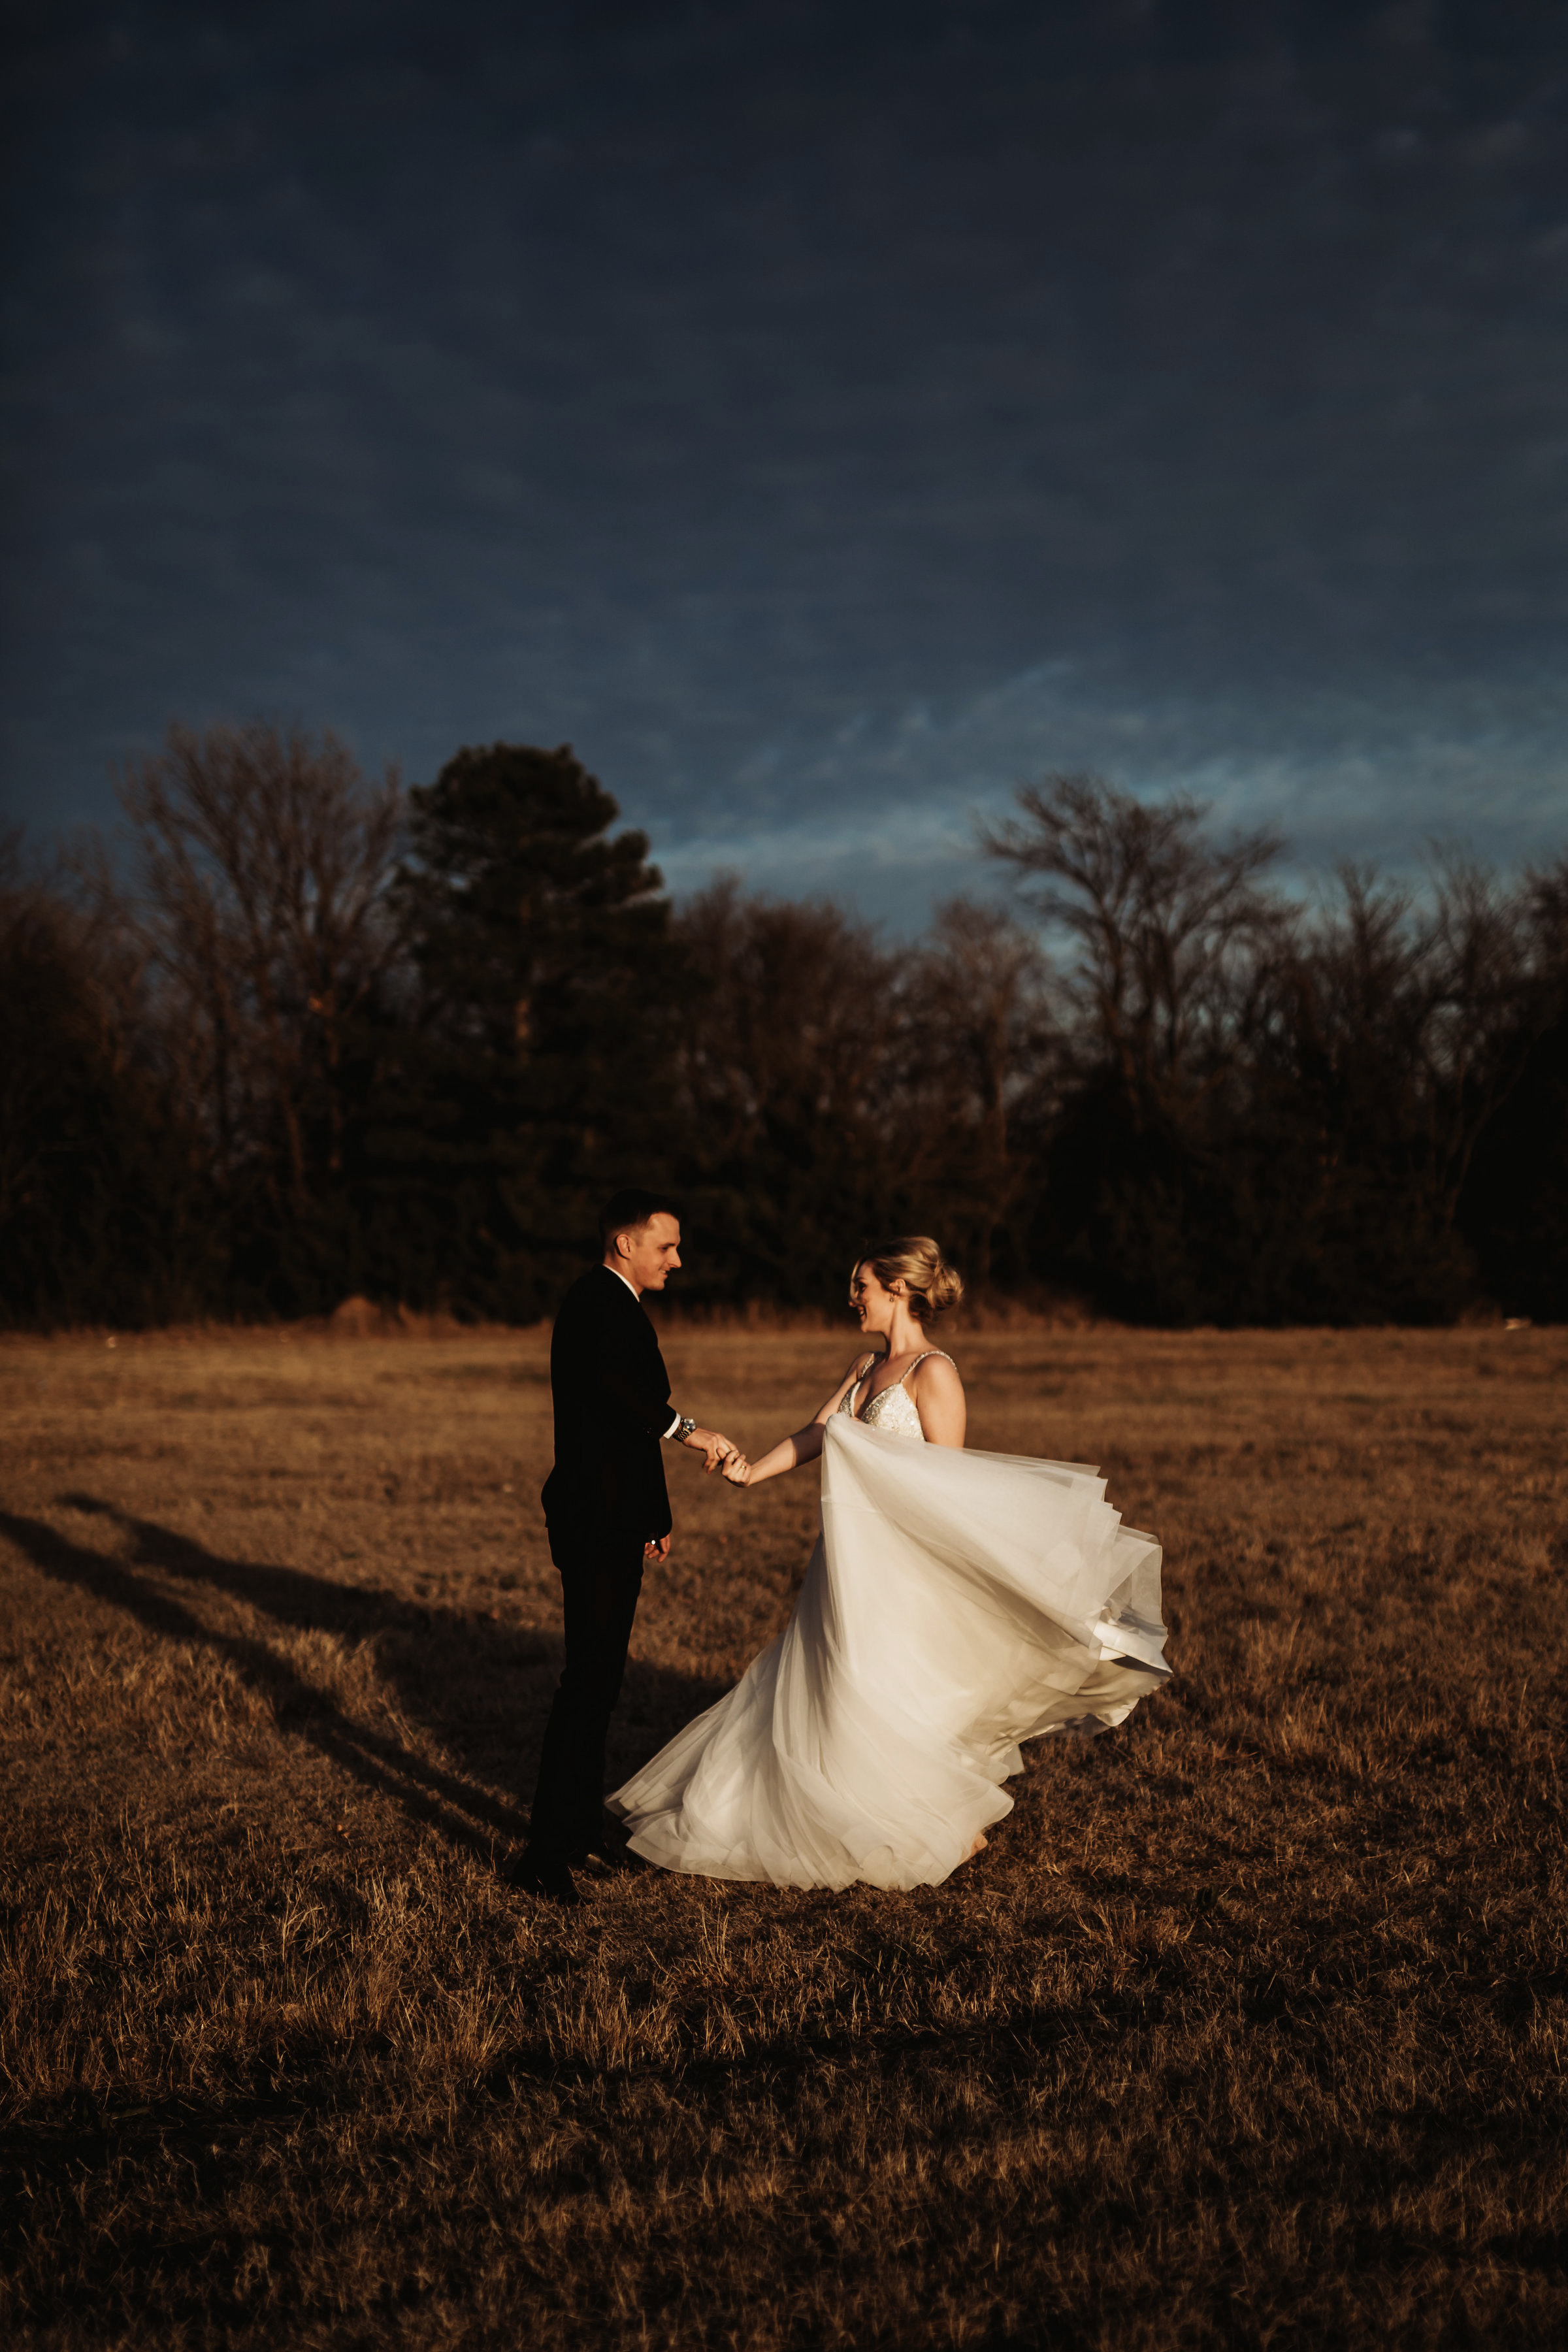 clewellphotography-9228.jpg